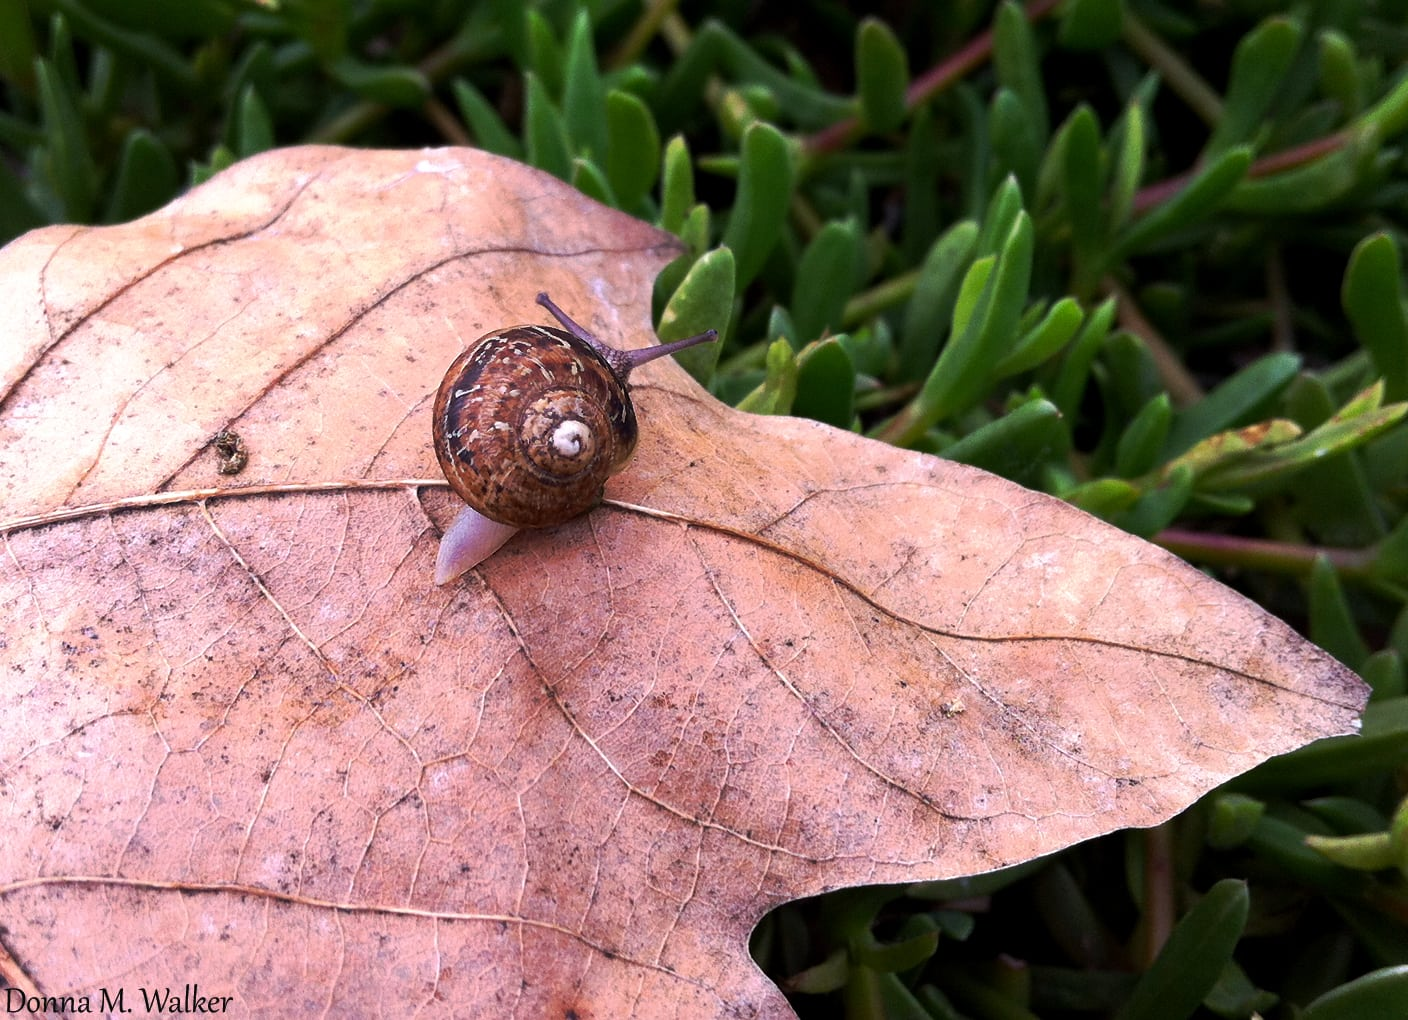 Snails are responsible for most of the leaf damage on your plants – and, they attract rats!